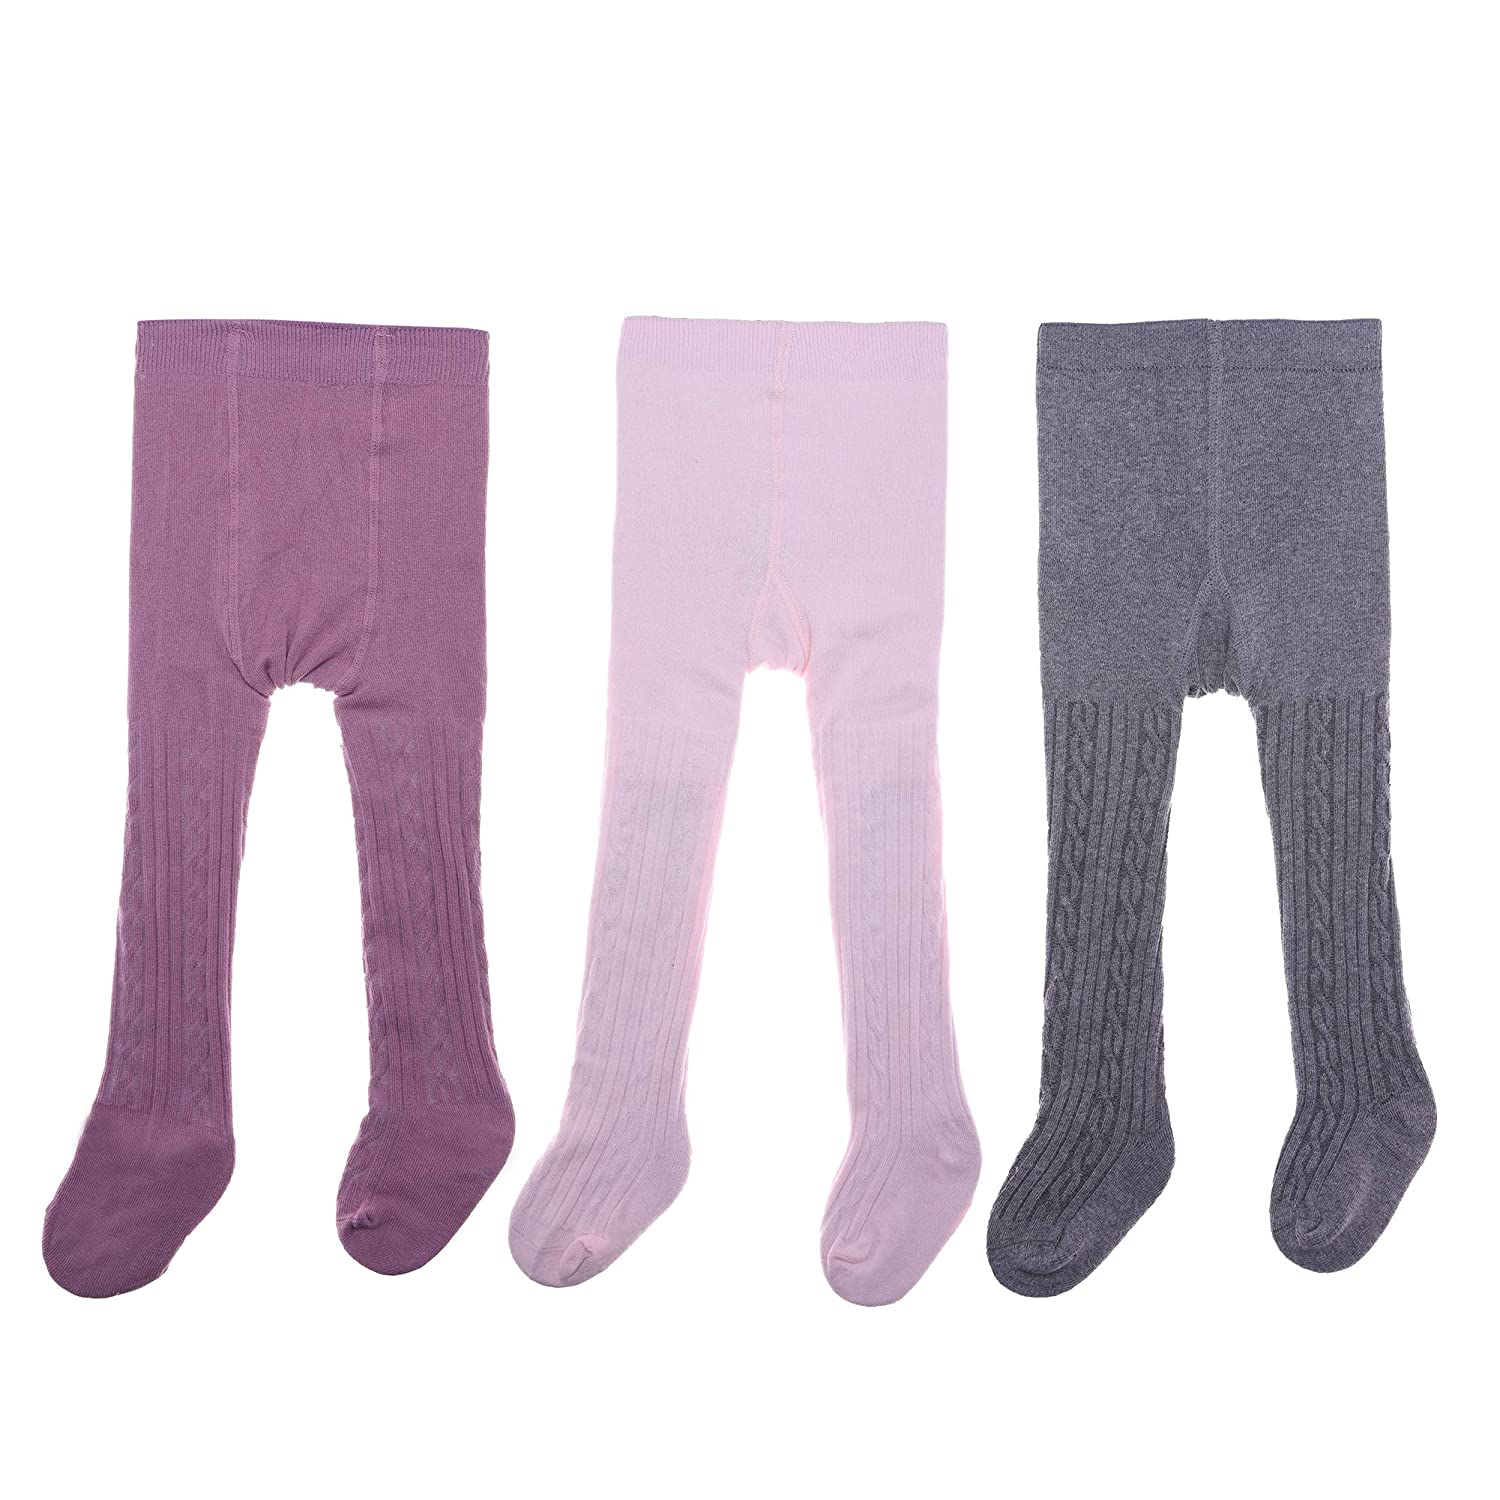 PUREMART 3 Pack Baby Girls Tights Seamless Cable Knit Tights Cotton Leggings Pants For Infant Girl Stockings 0-6 Year Old.